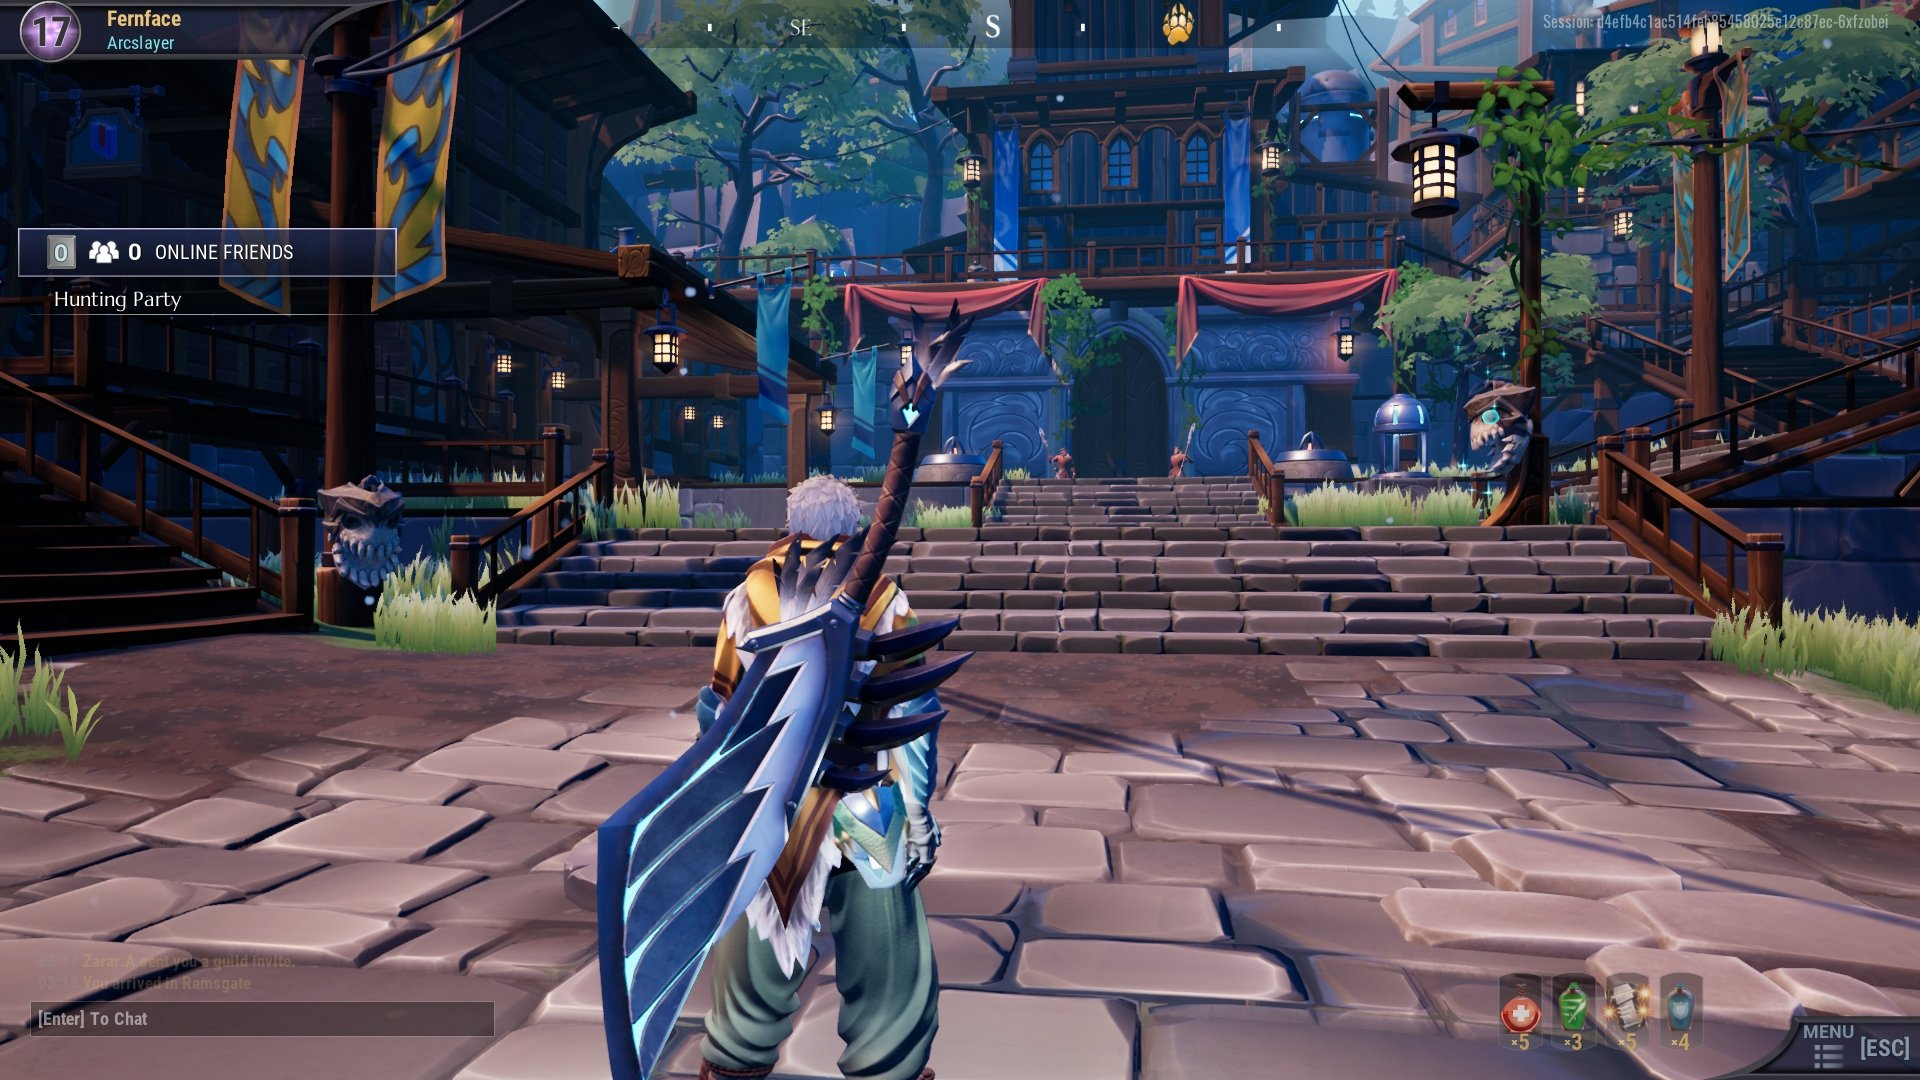 Dread Skull 7 - All daily dread skull locations in Dauntless